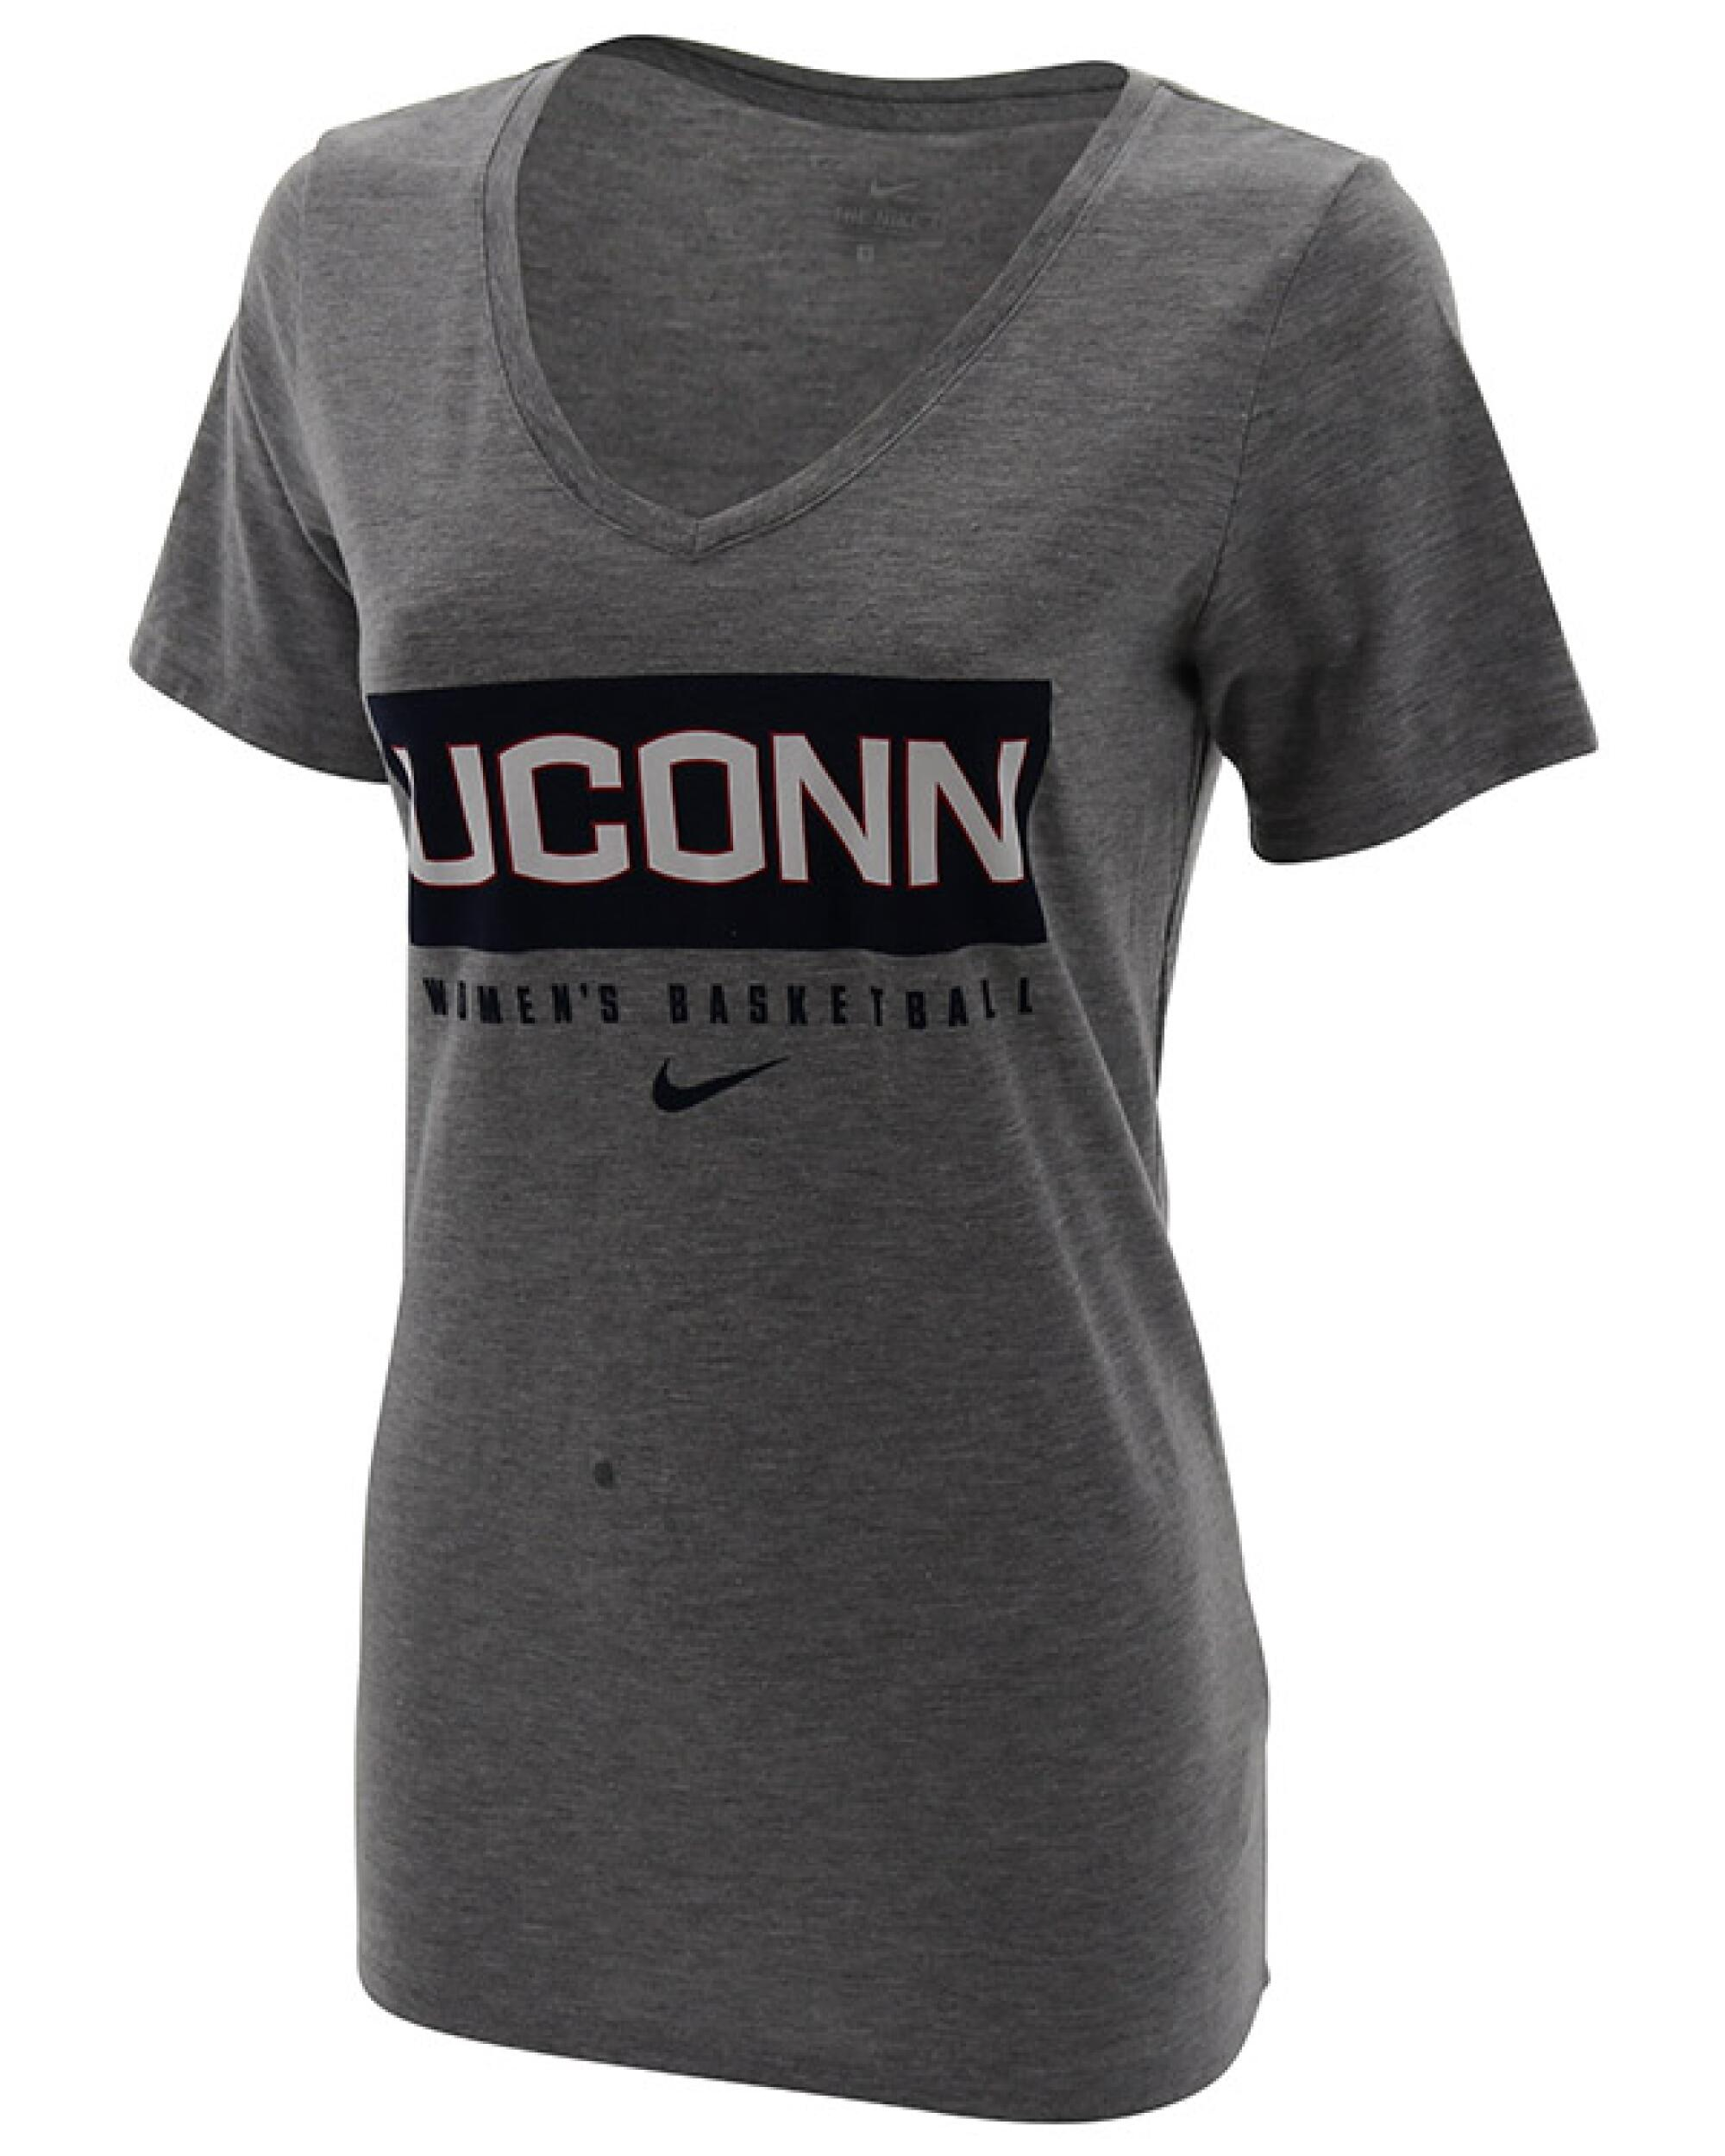 Uconn Huskies Nike Women S Basketball Tri Blend Short Sleeve T Shirt Uconn Huskies Merchandise University Of Connecticut Apparel Uconn Gear Huskies Clothing Uconn Huskies Fan Shop